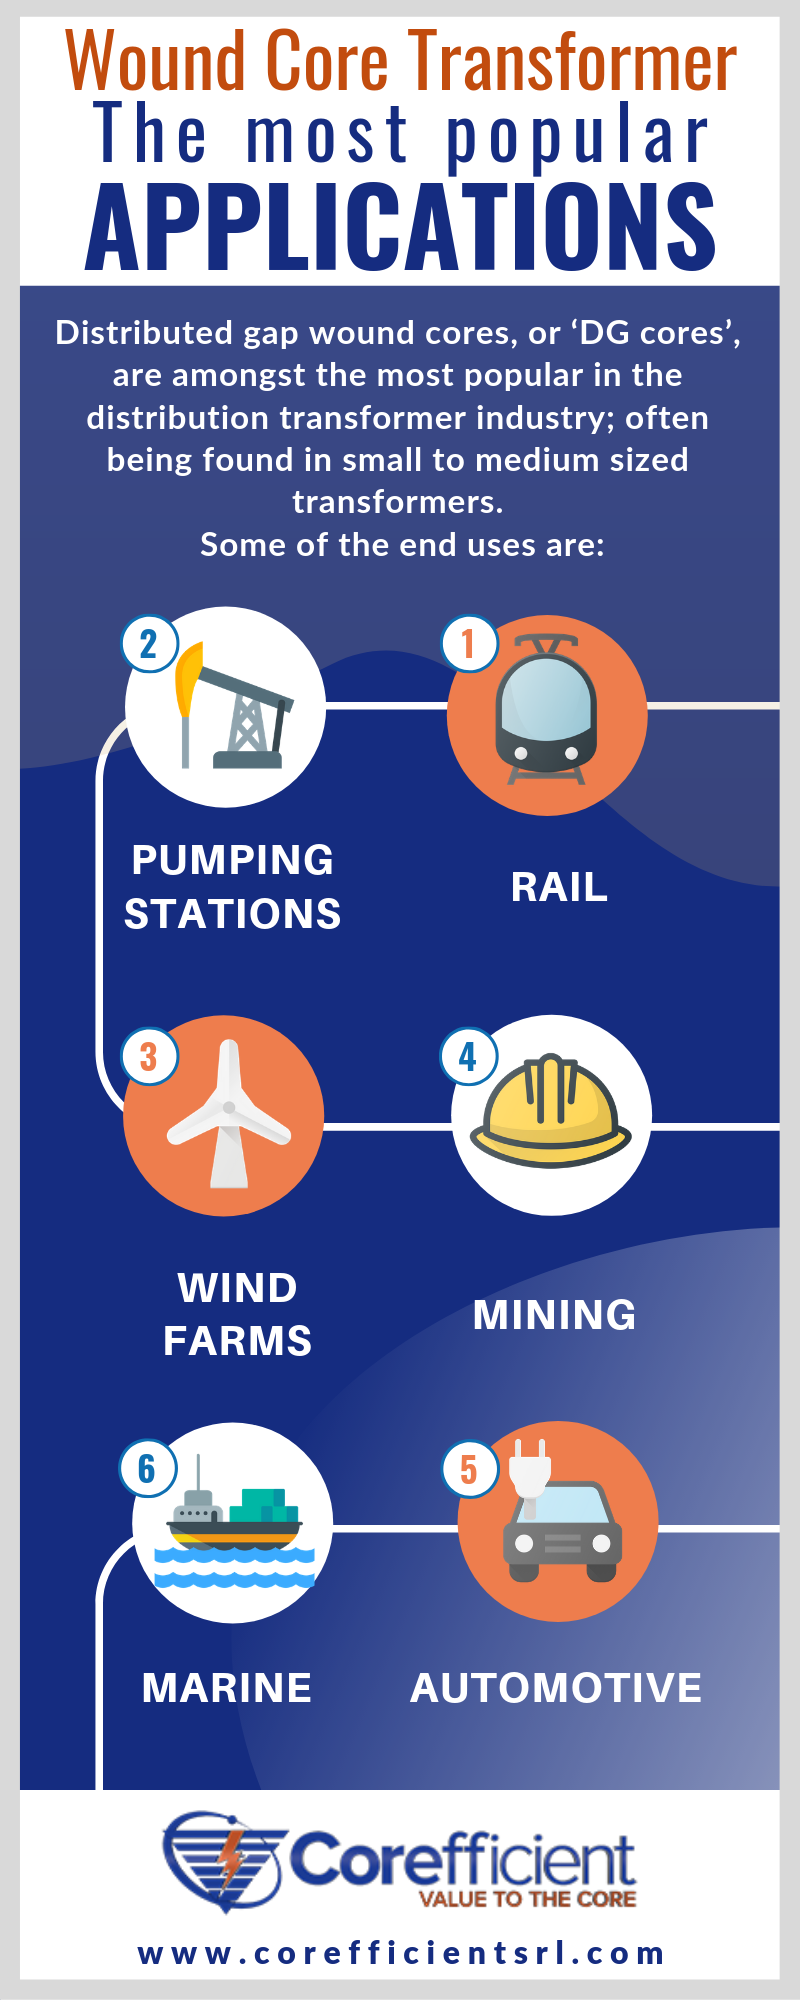 Wound Core Transformer Applications Infographic